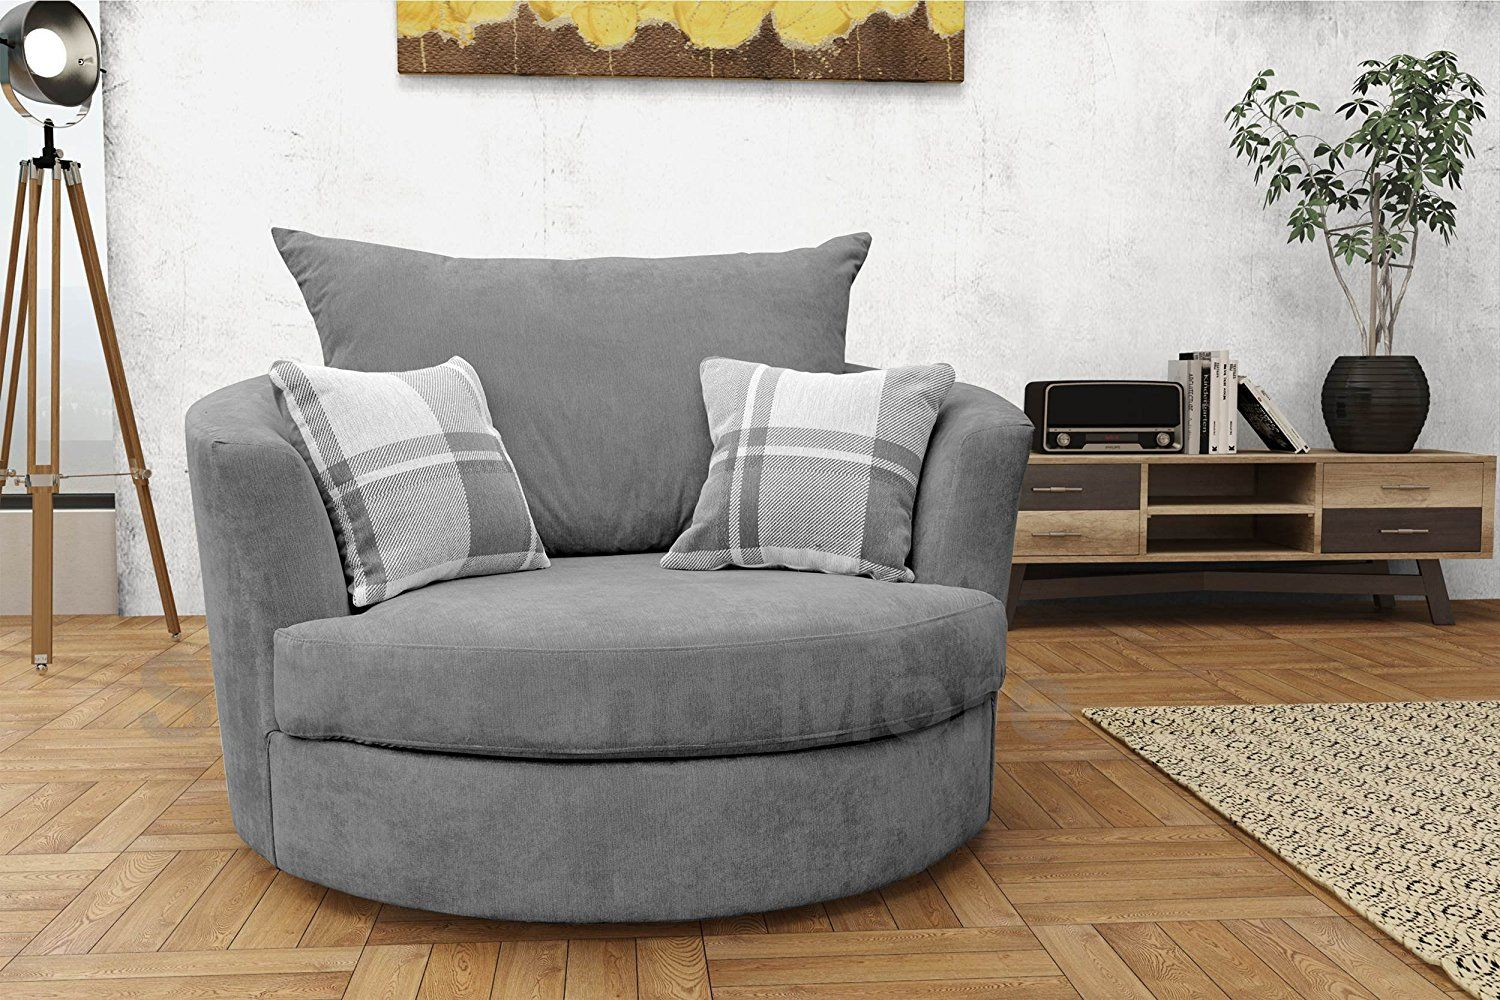 Best Large Swivel Round Cuddle Chair Fabric Grey Amazon Co Uk Kitchen Home Cuddle Chair 400 x 300